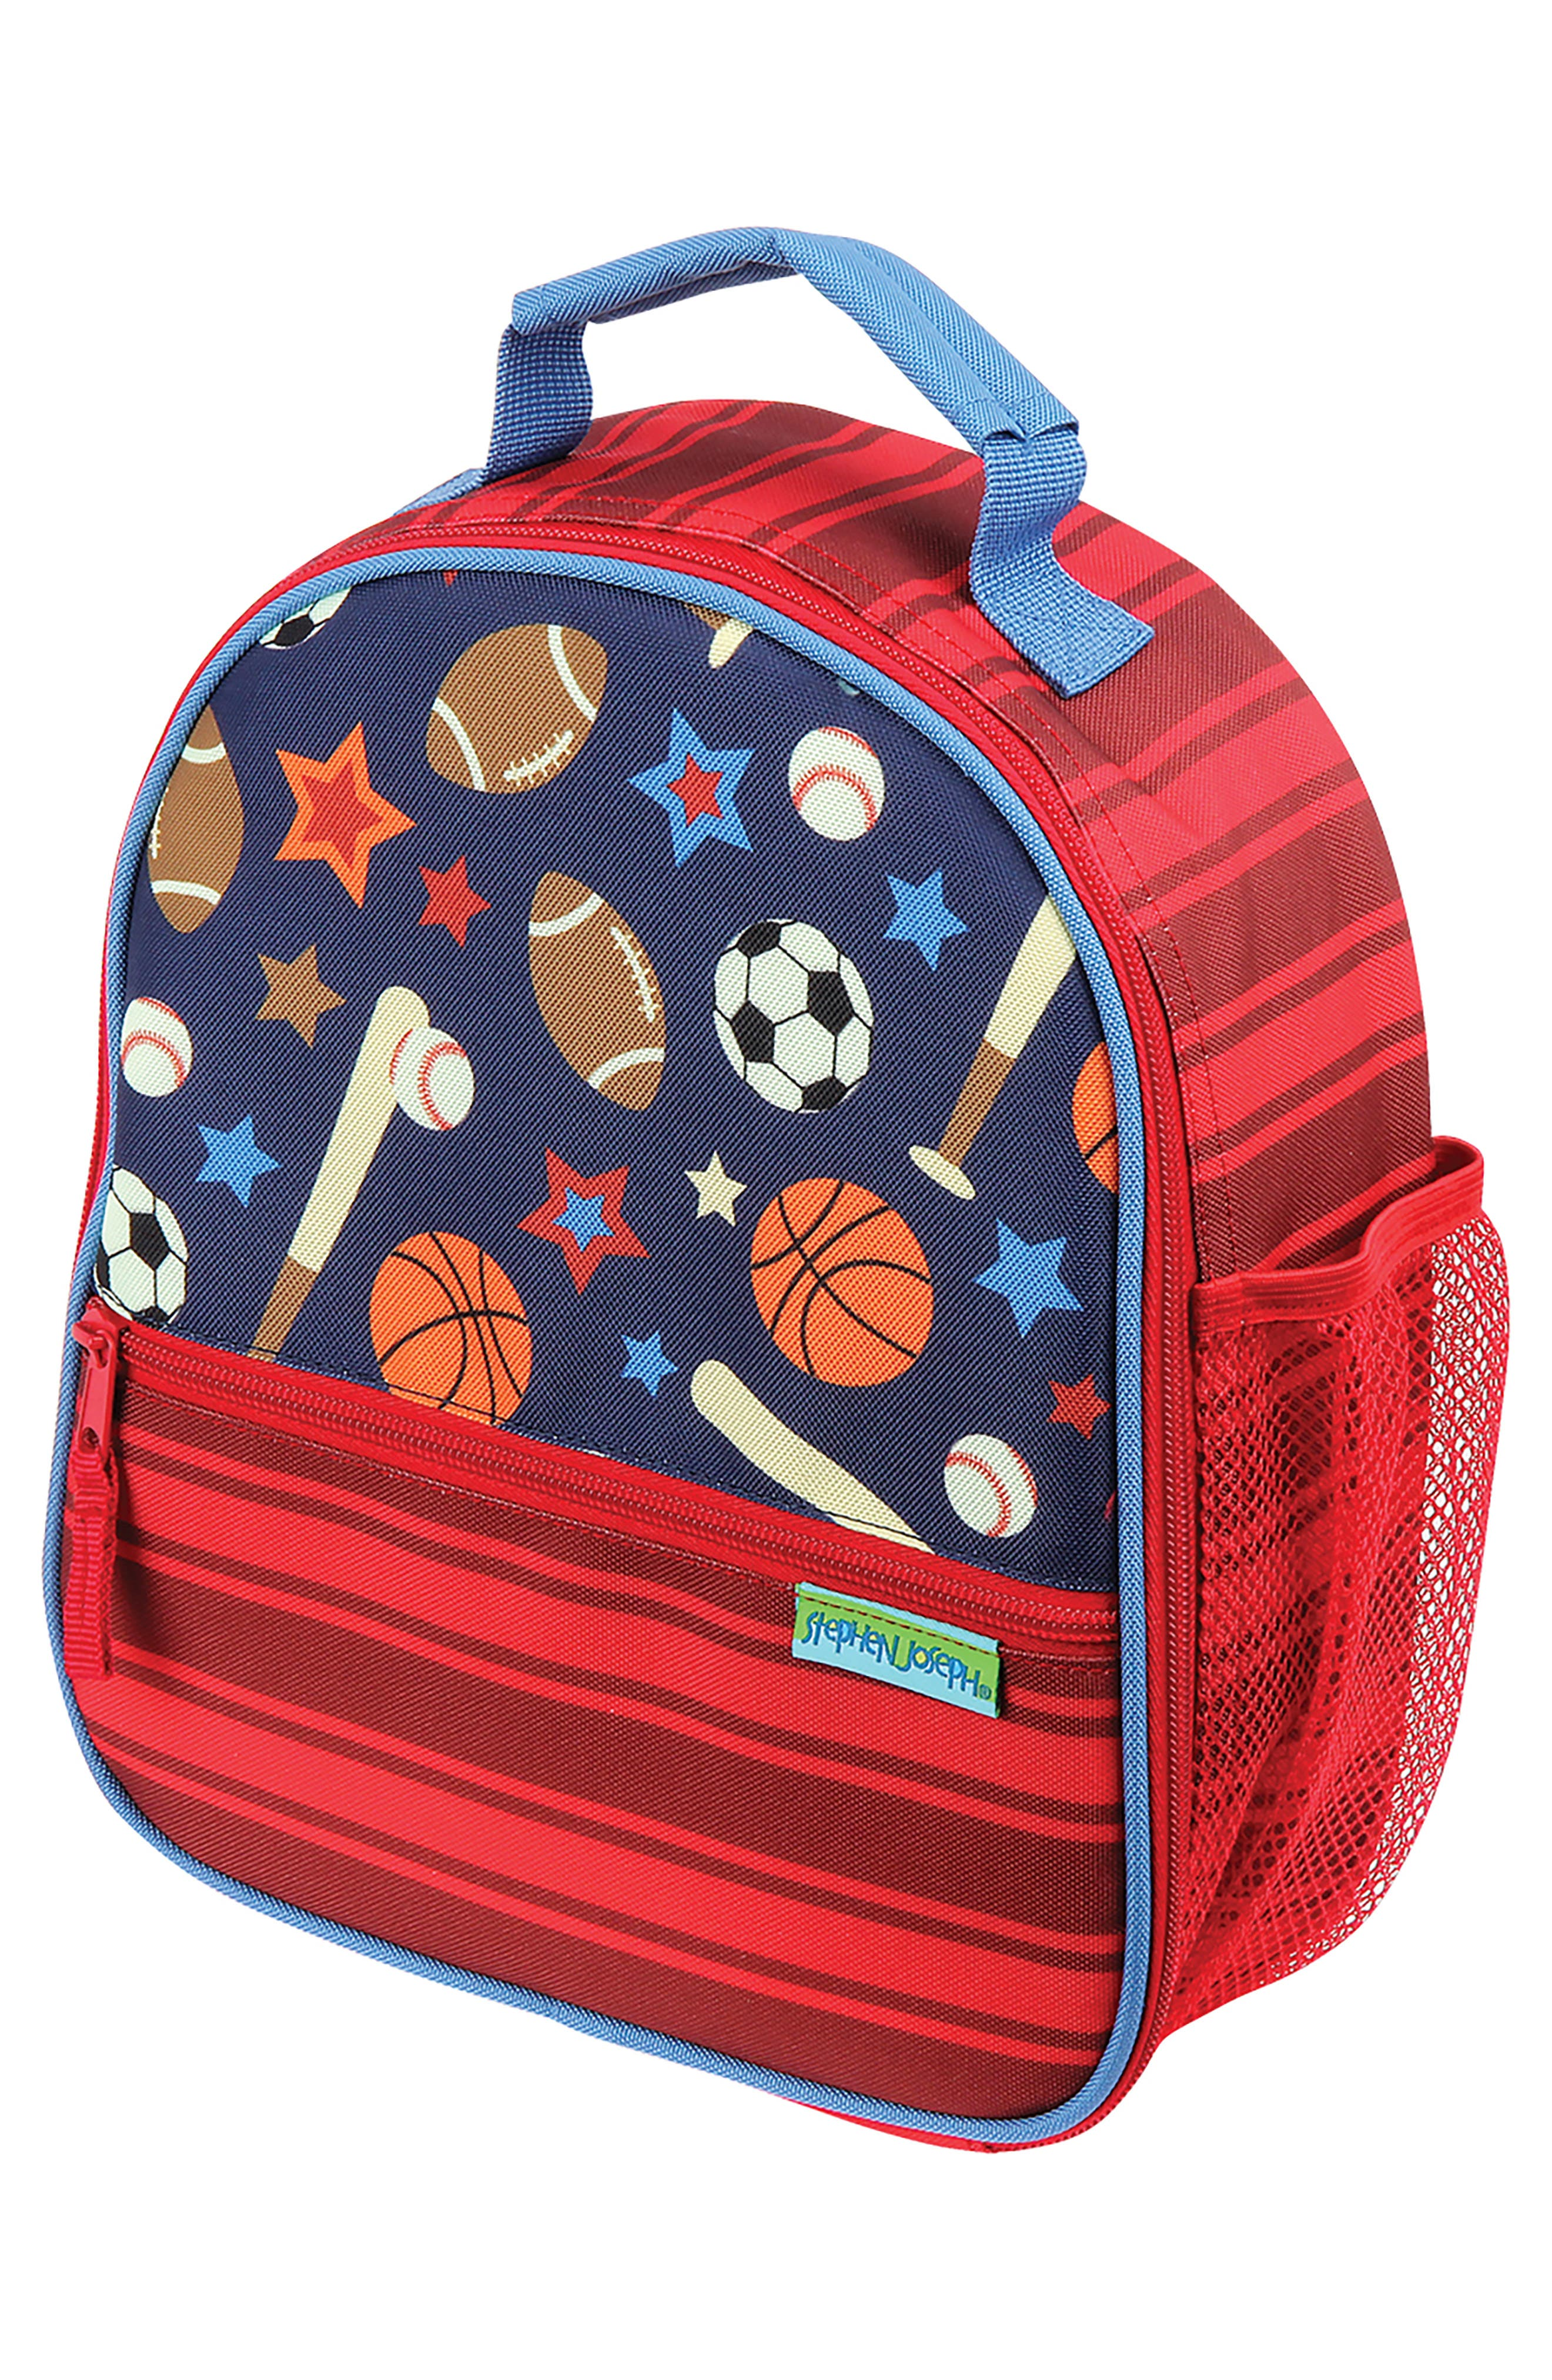 STEPHEN JOSEPH,                             Sports Backpack & Lunchbox,                             Alternate thumbnail 6, color,                             SPORTS